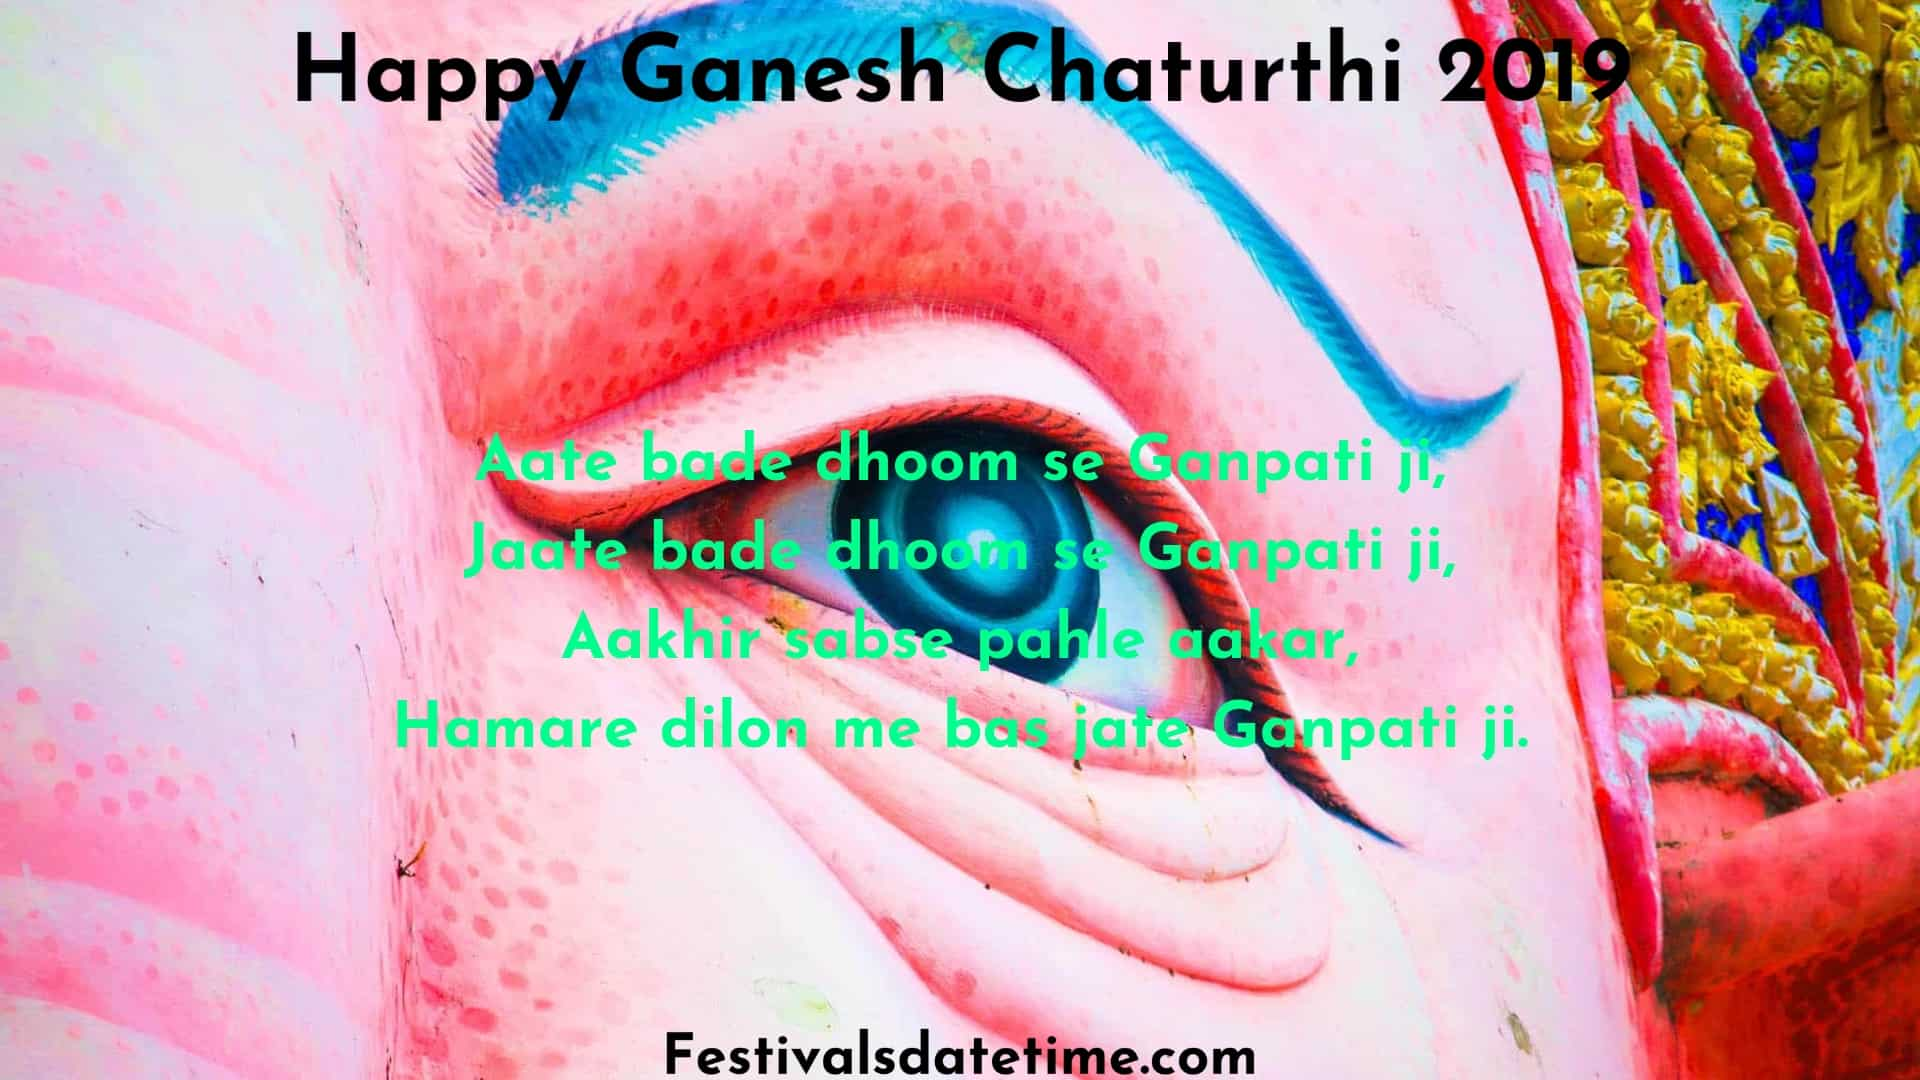 ganesh_chaturthi_wishes_with_quotes